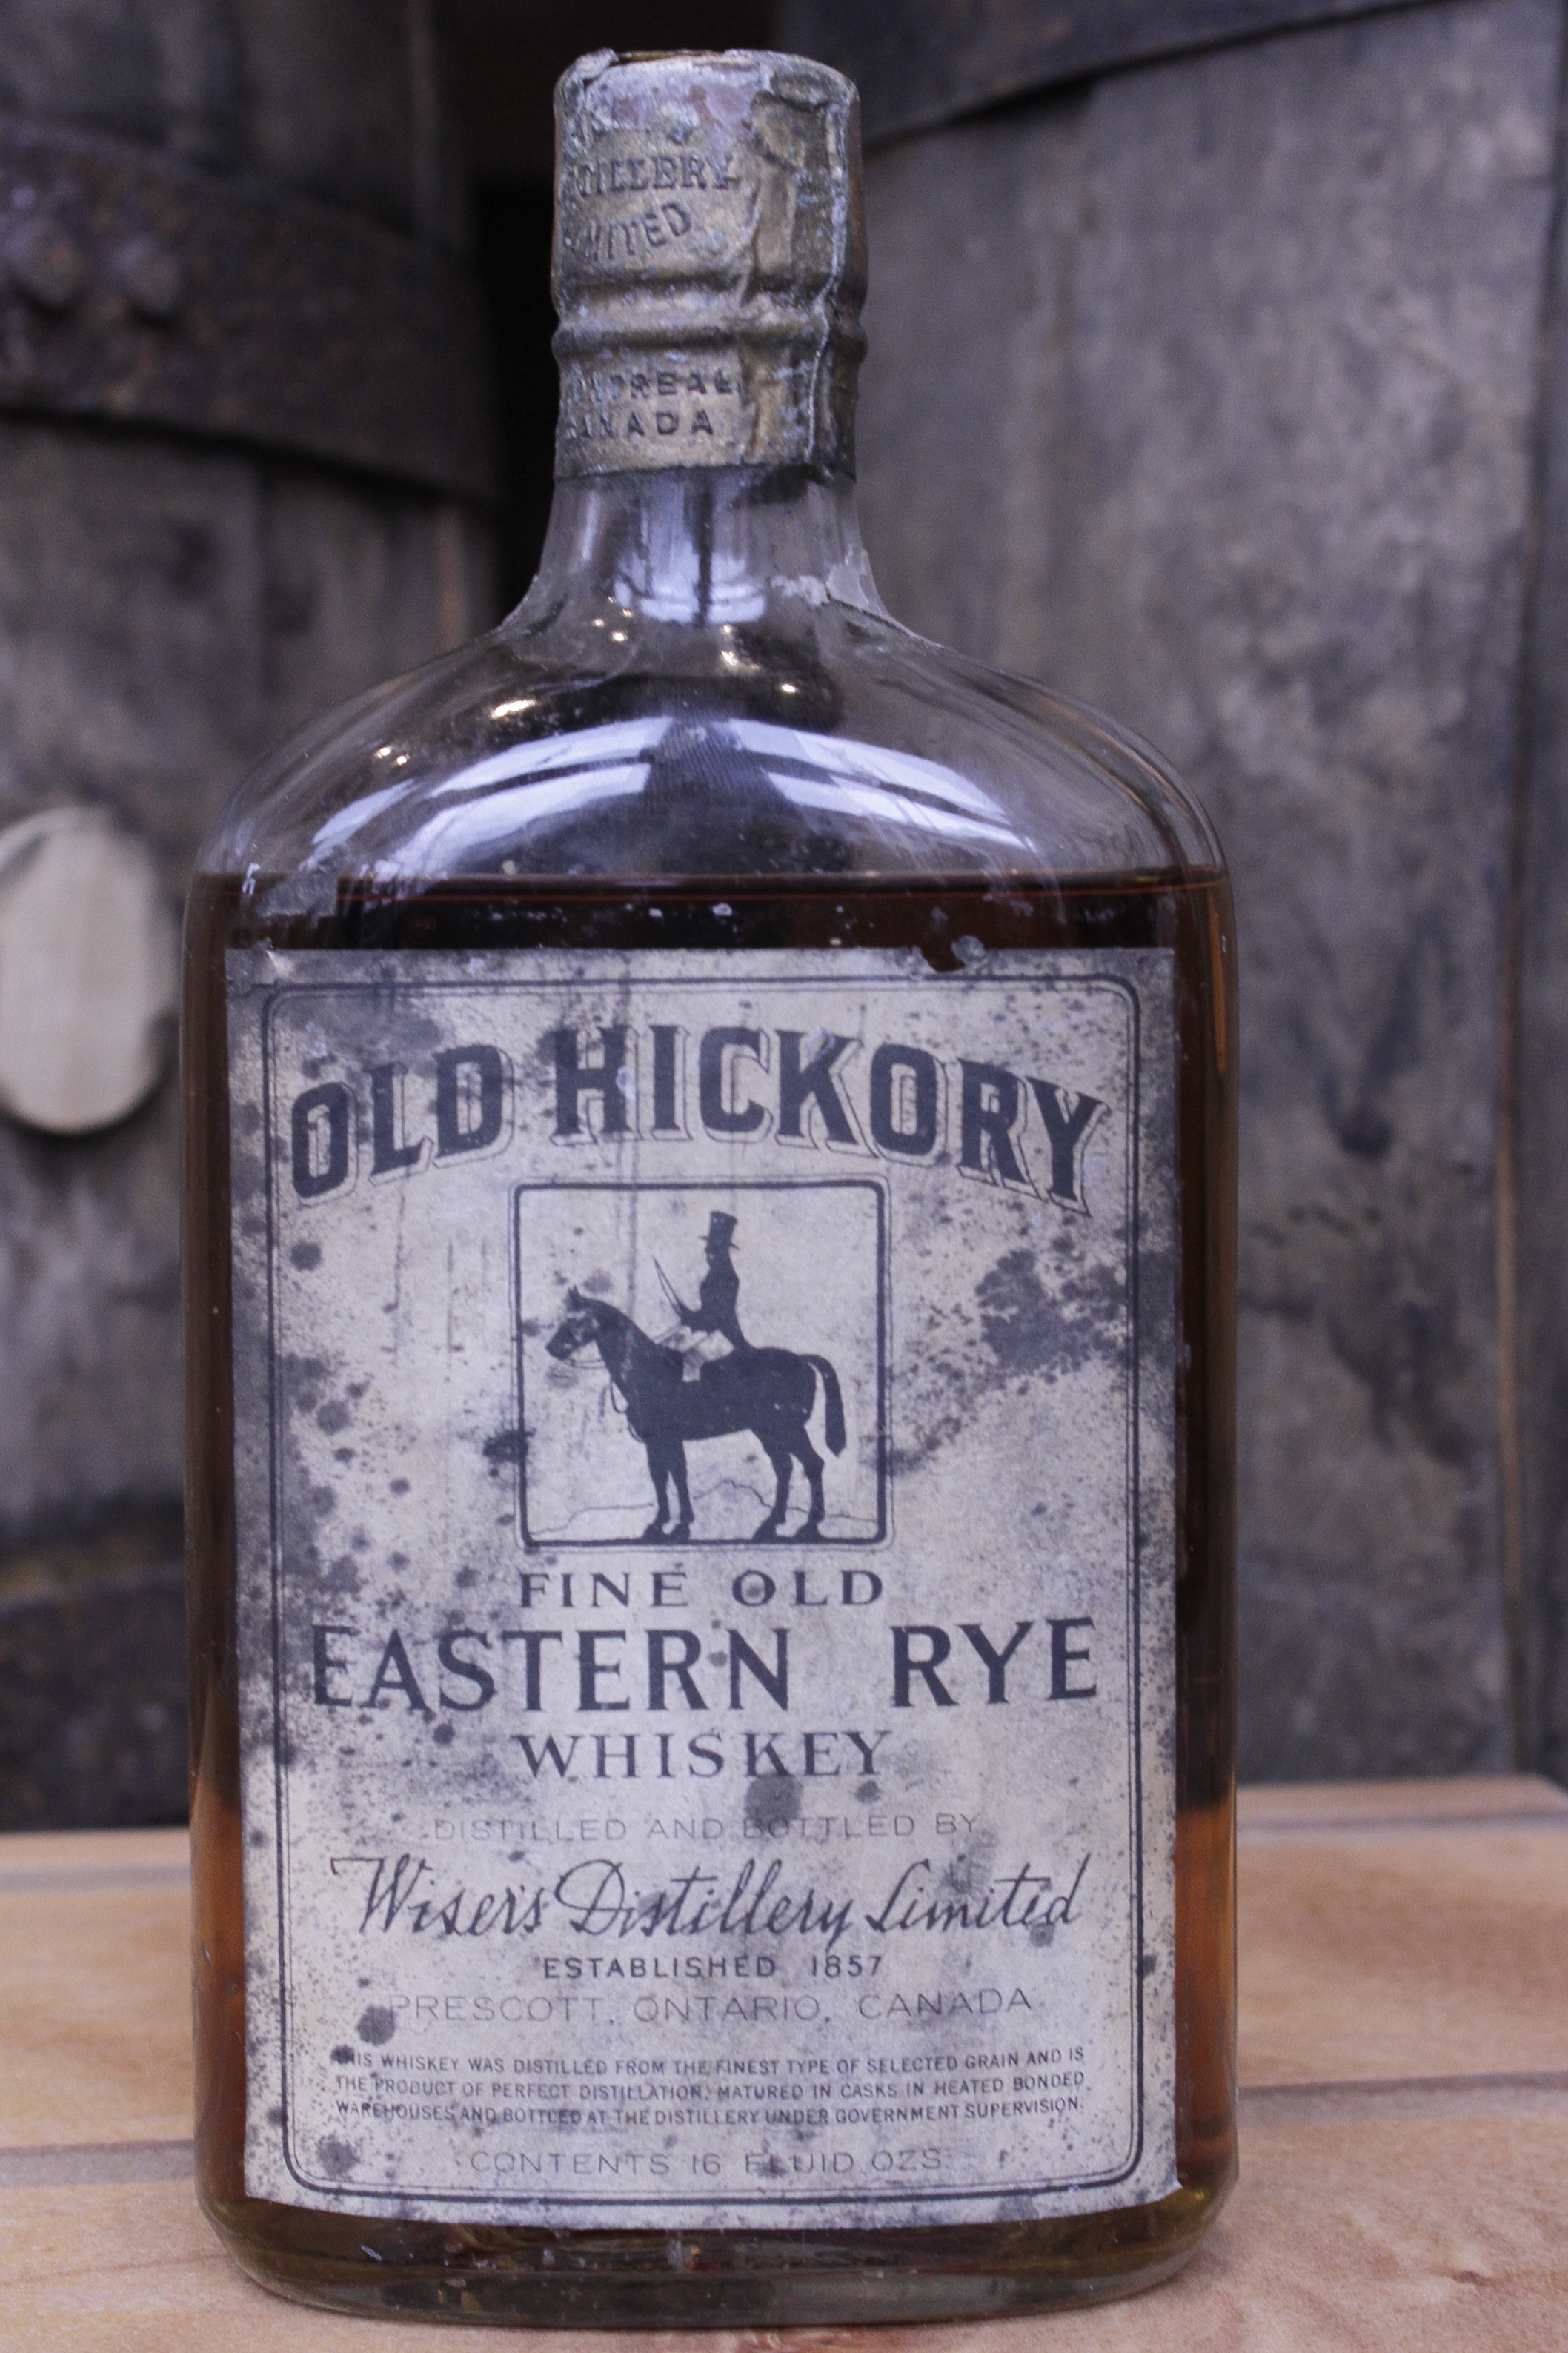 OLD HICKORY FINE OLD EASTERN RYE WHISKEY    About the Product   One pint of rye whiskey, bottled in bond. Distilled by Wiser's Distillery Limited, and bottled in 1925 by Wiser's Distiller Limited.  The product of perfect distillation, this whiskey was distilled from the finest type of selected grain, matured in casks in heated bonded warehouses, and bottled at the distillery under government supervision. The bottle's markings indicate that it was wax-dipped in Montreal and sealed in Ottawa.   About the Distillery   Wiser's Distillery Limited (1857 ­– 1924); Canadian Industrial Alcohol Co. (c. 1924). Prescott, Ontario, Canada.  Established in 1857 in Prescott, Ontario, JP Wiser's Distillery Limited was acquired by the Canadian Industrial Alcohol Company in 1924. This parent organization moved the distillery's operations to Corbyville, Ontario.